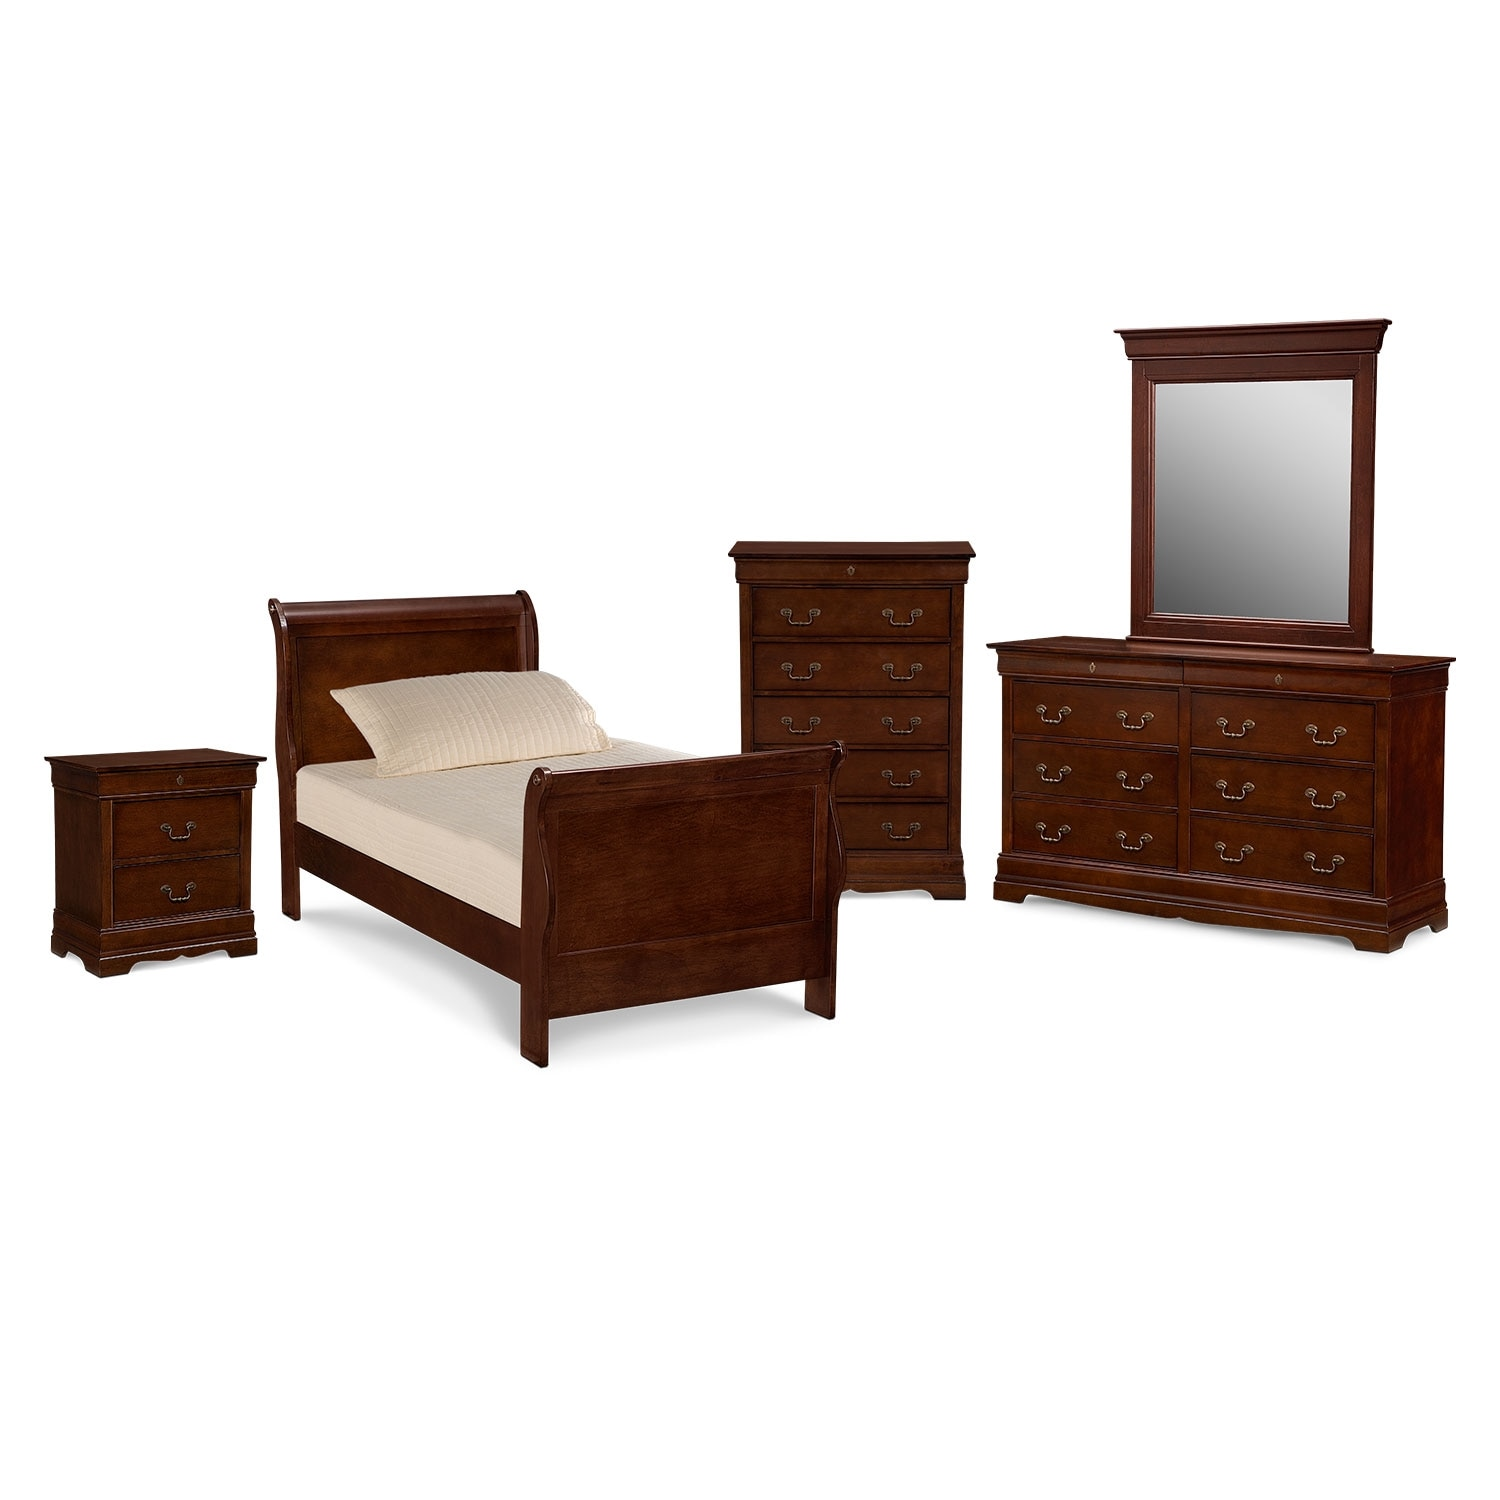 Neo Classic Youth 7 Piece Twin Bedroom Set Cherry